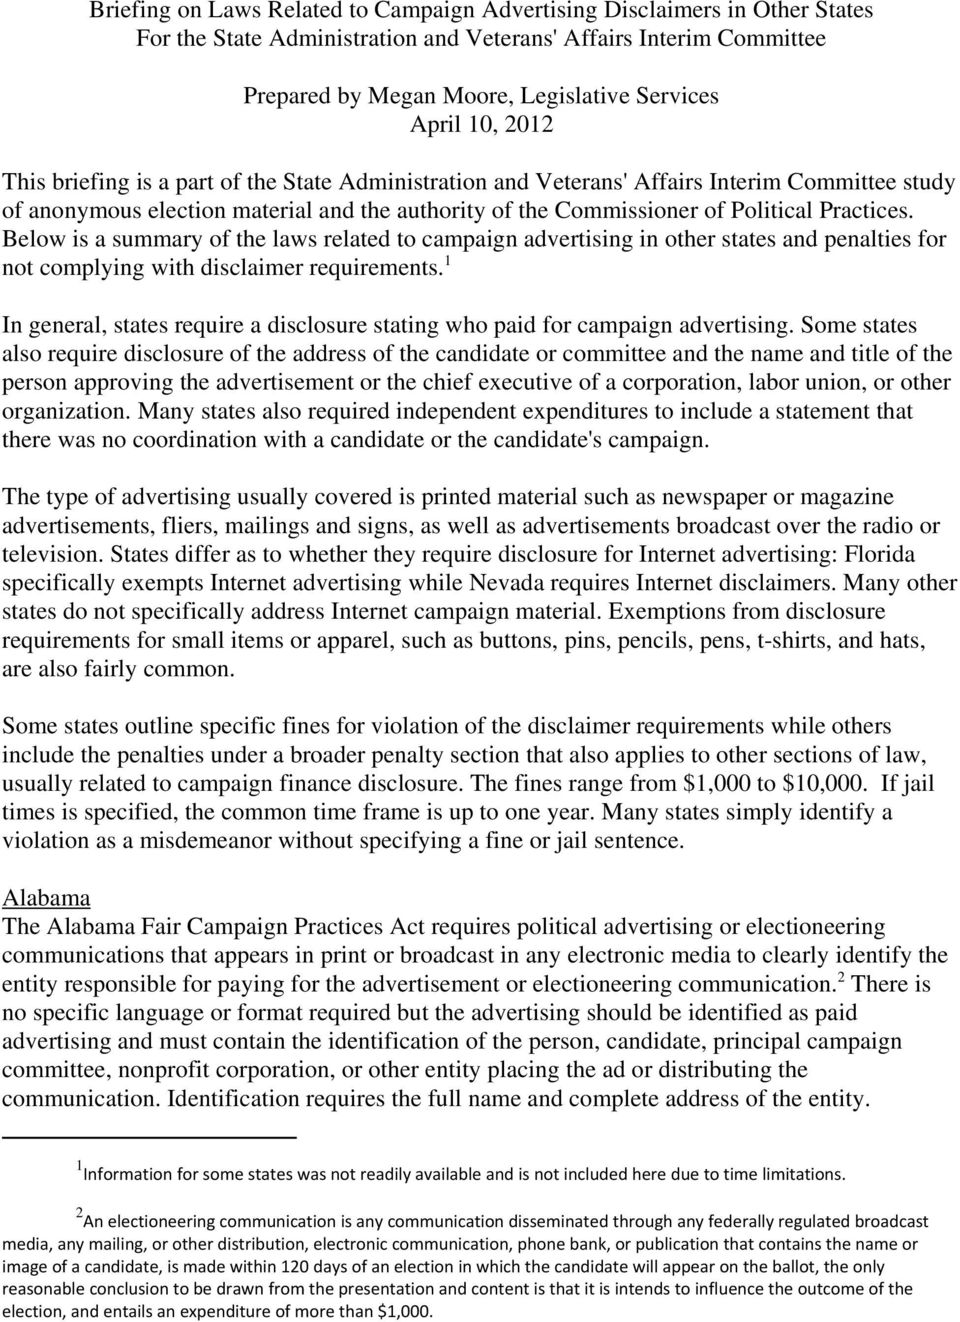 Below is a summary of the laws related to campaign advertising in other states and penalties for not complying with disclaimer requirements.